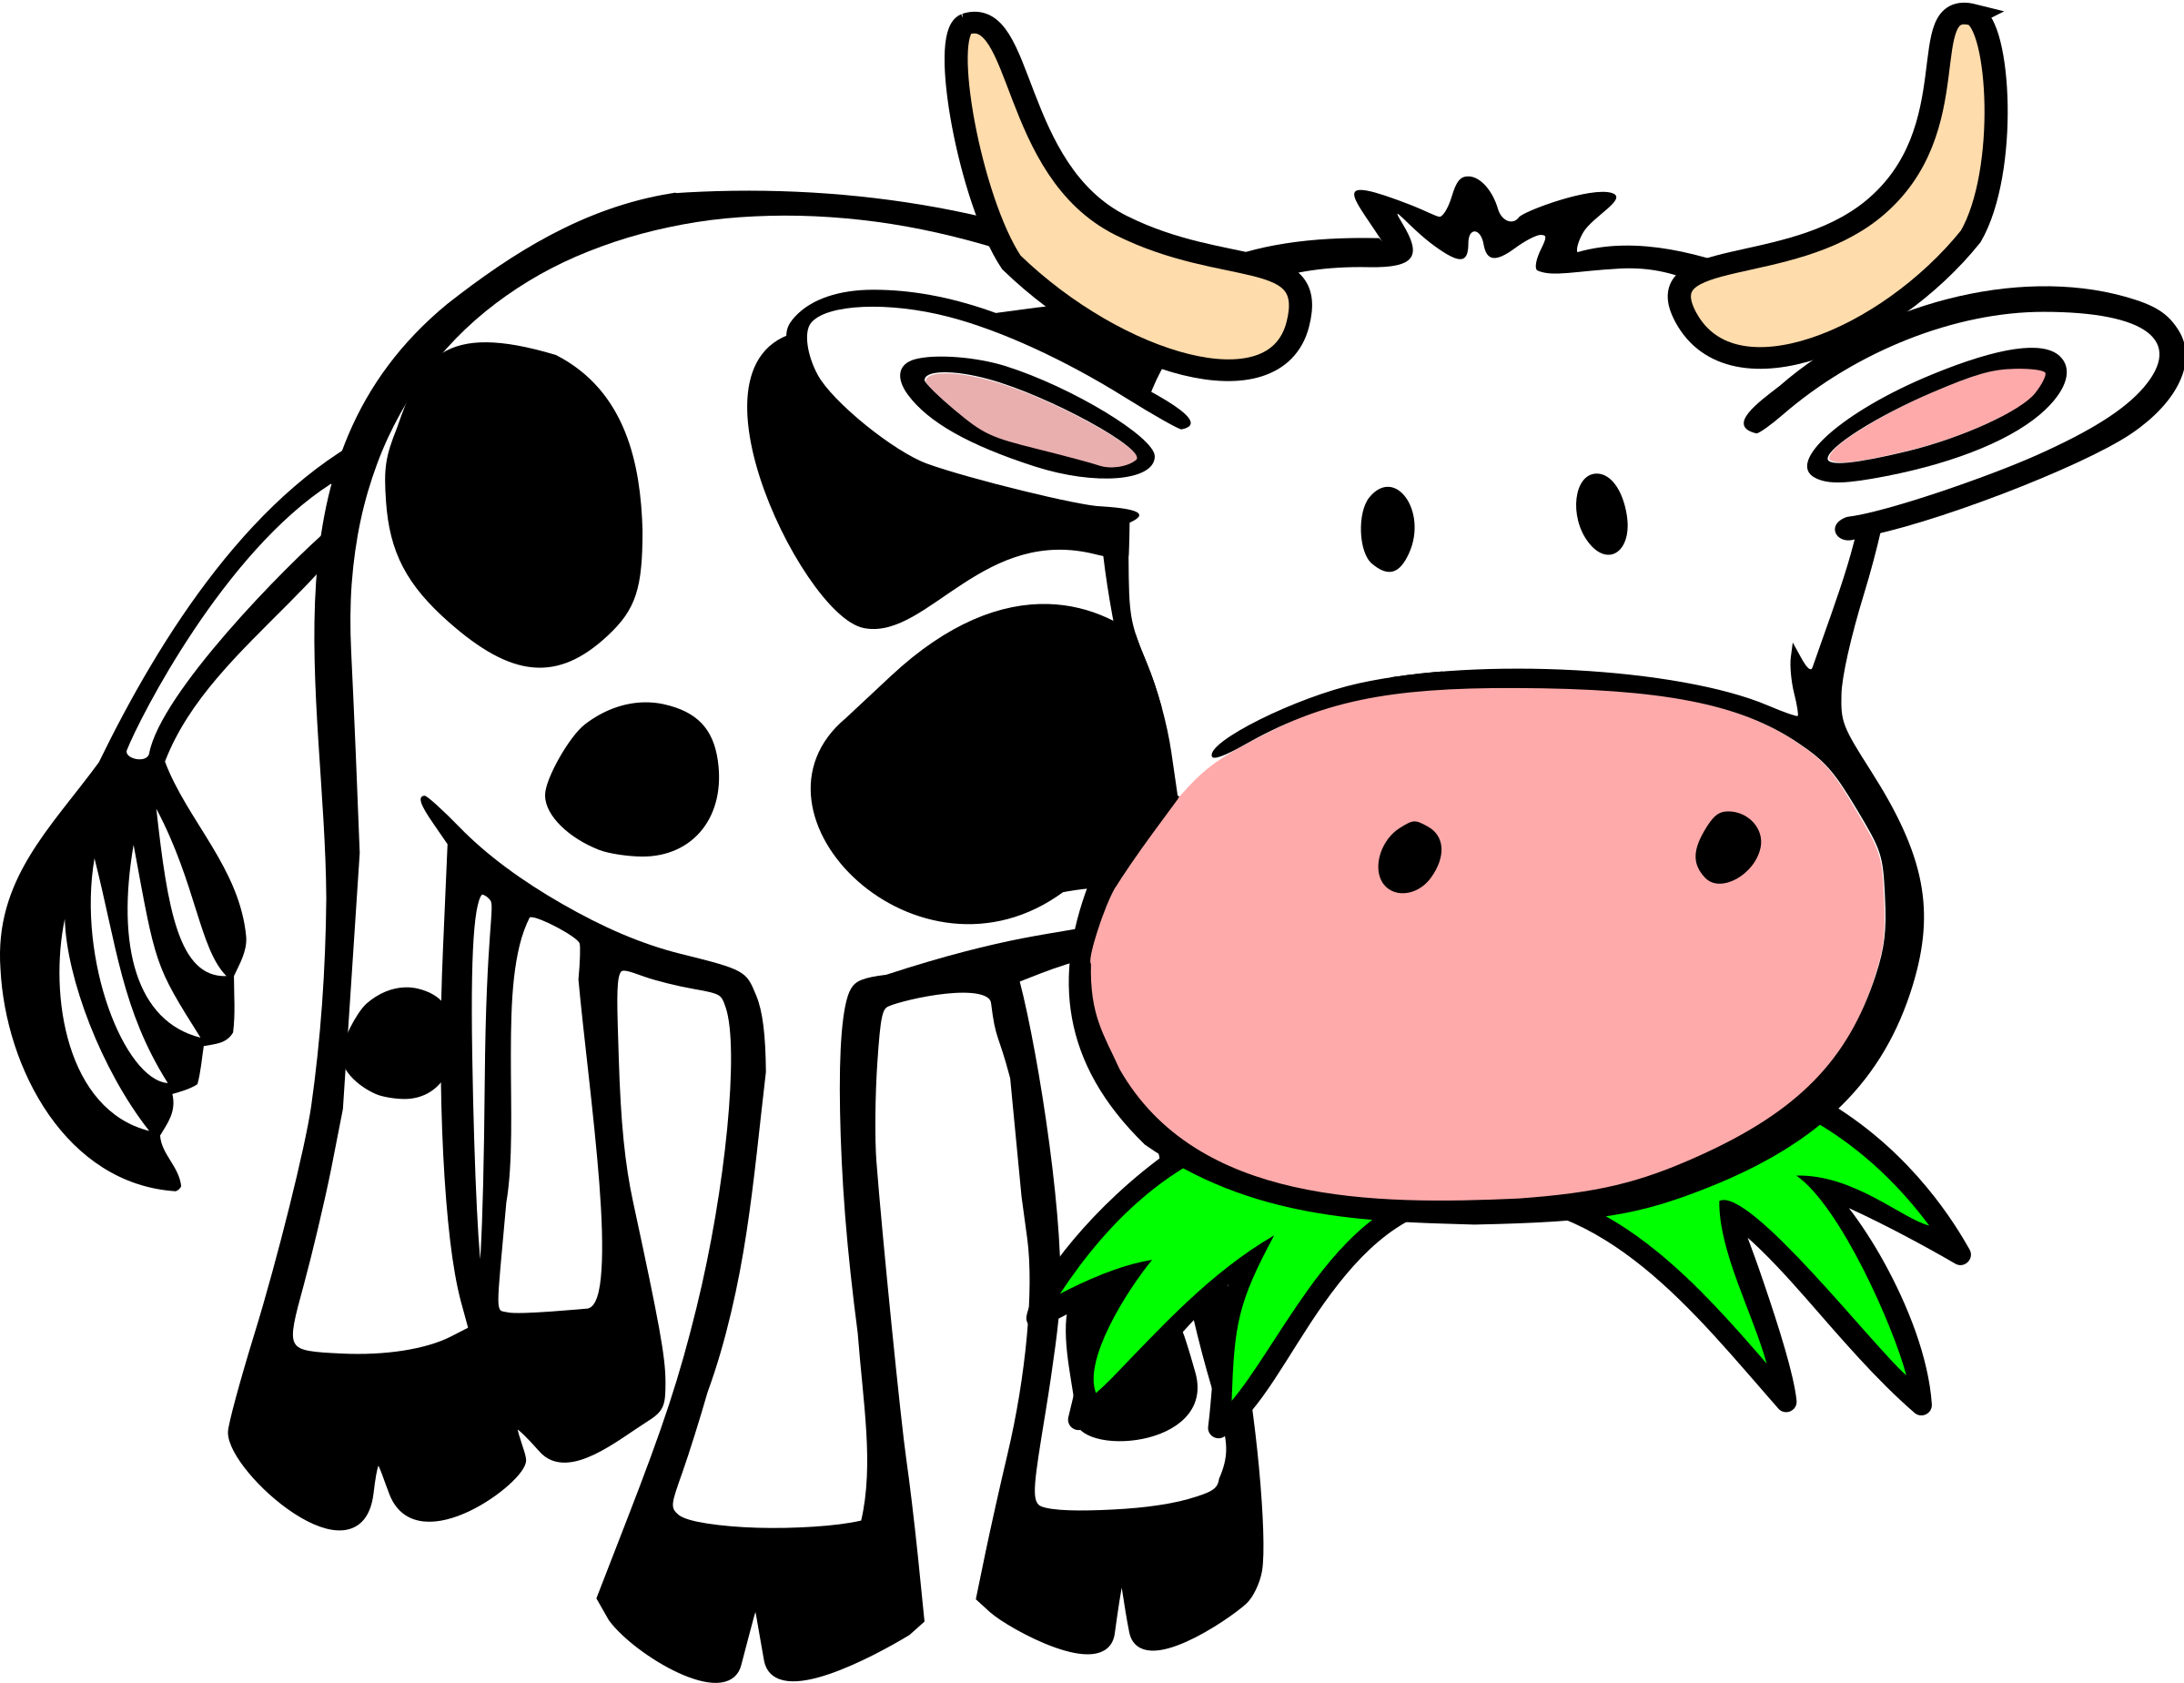 Clipart cow transparent background. Grassland animals at getdrawings